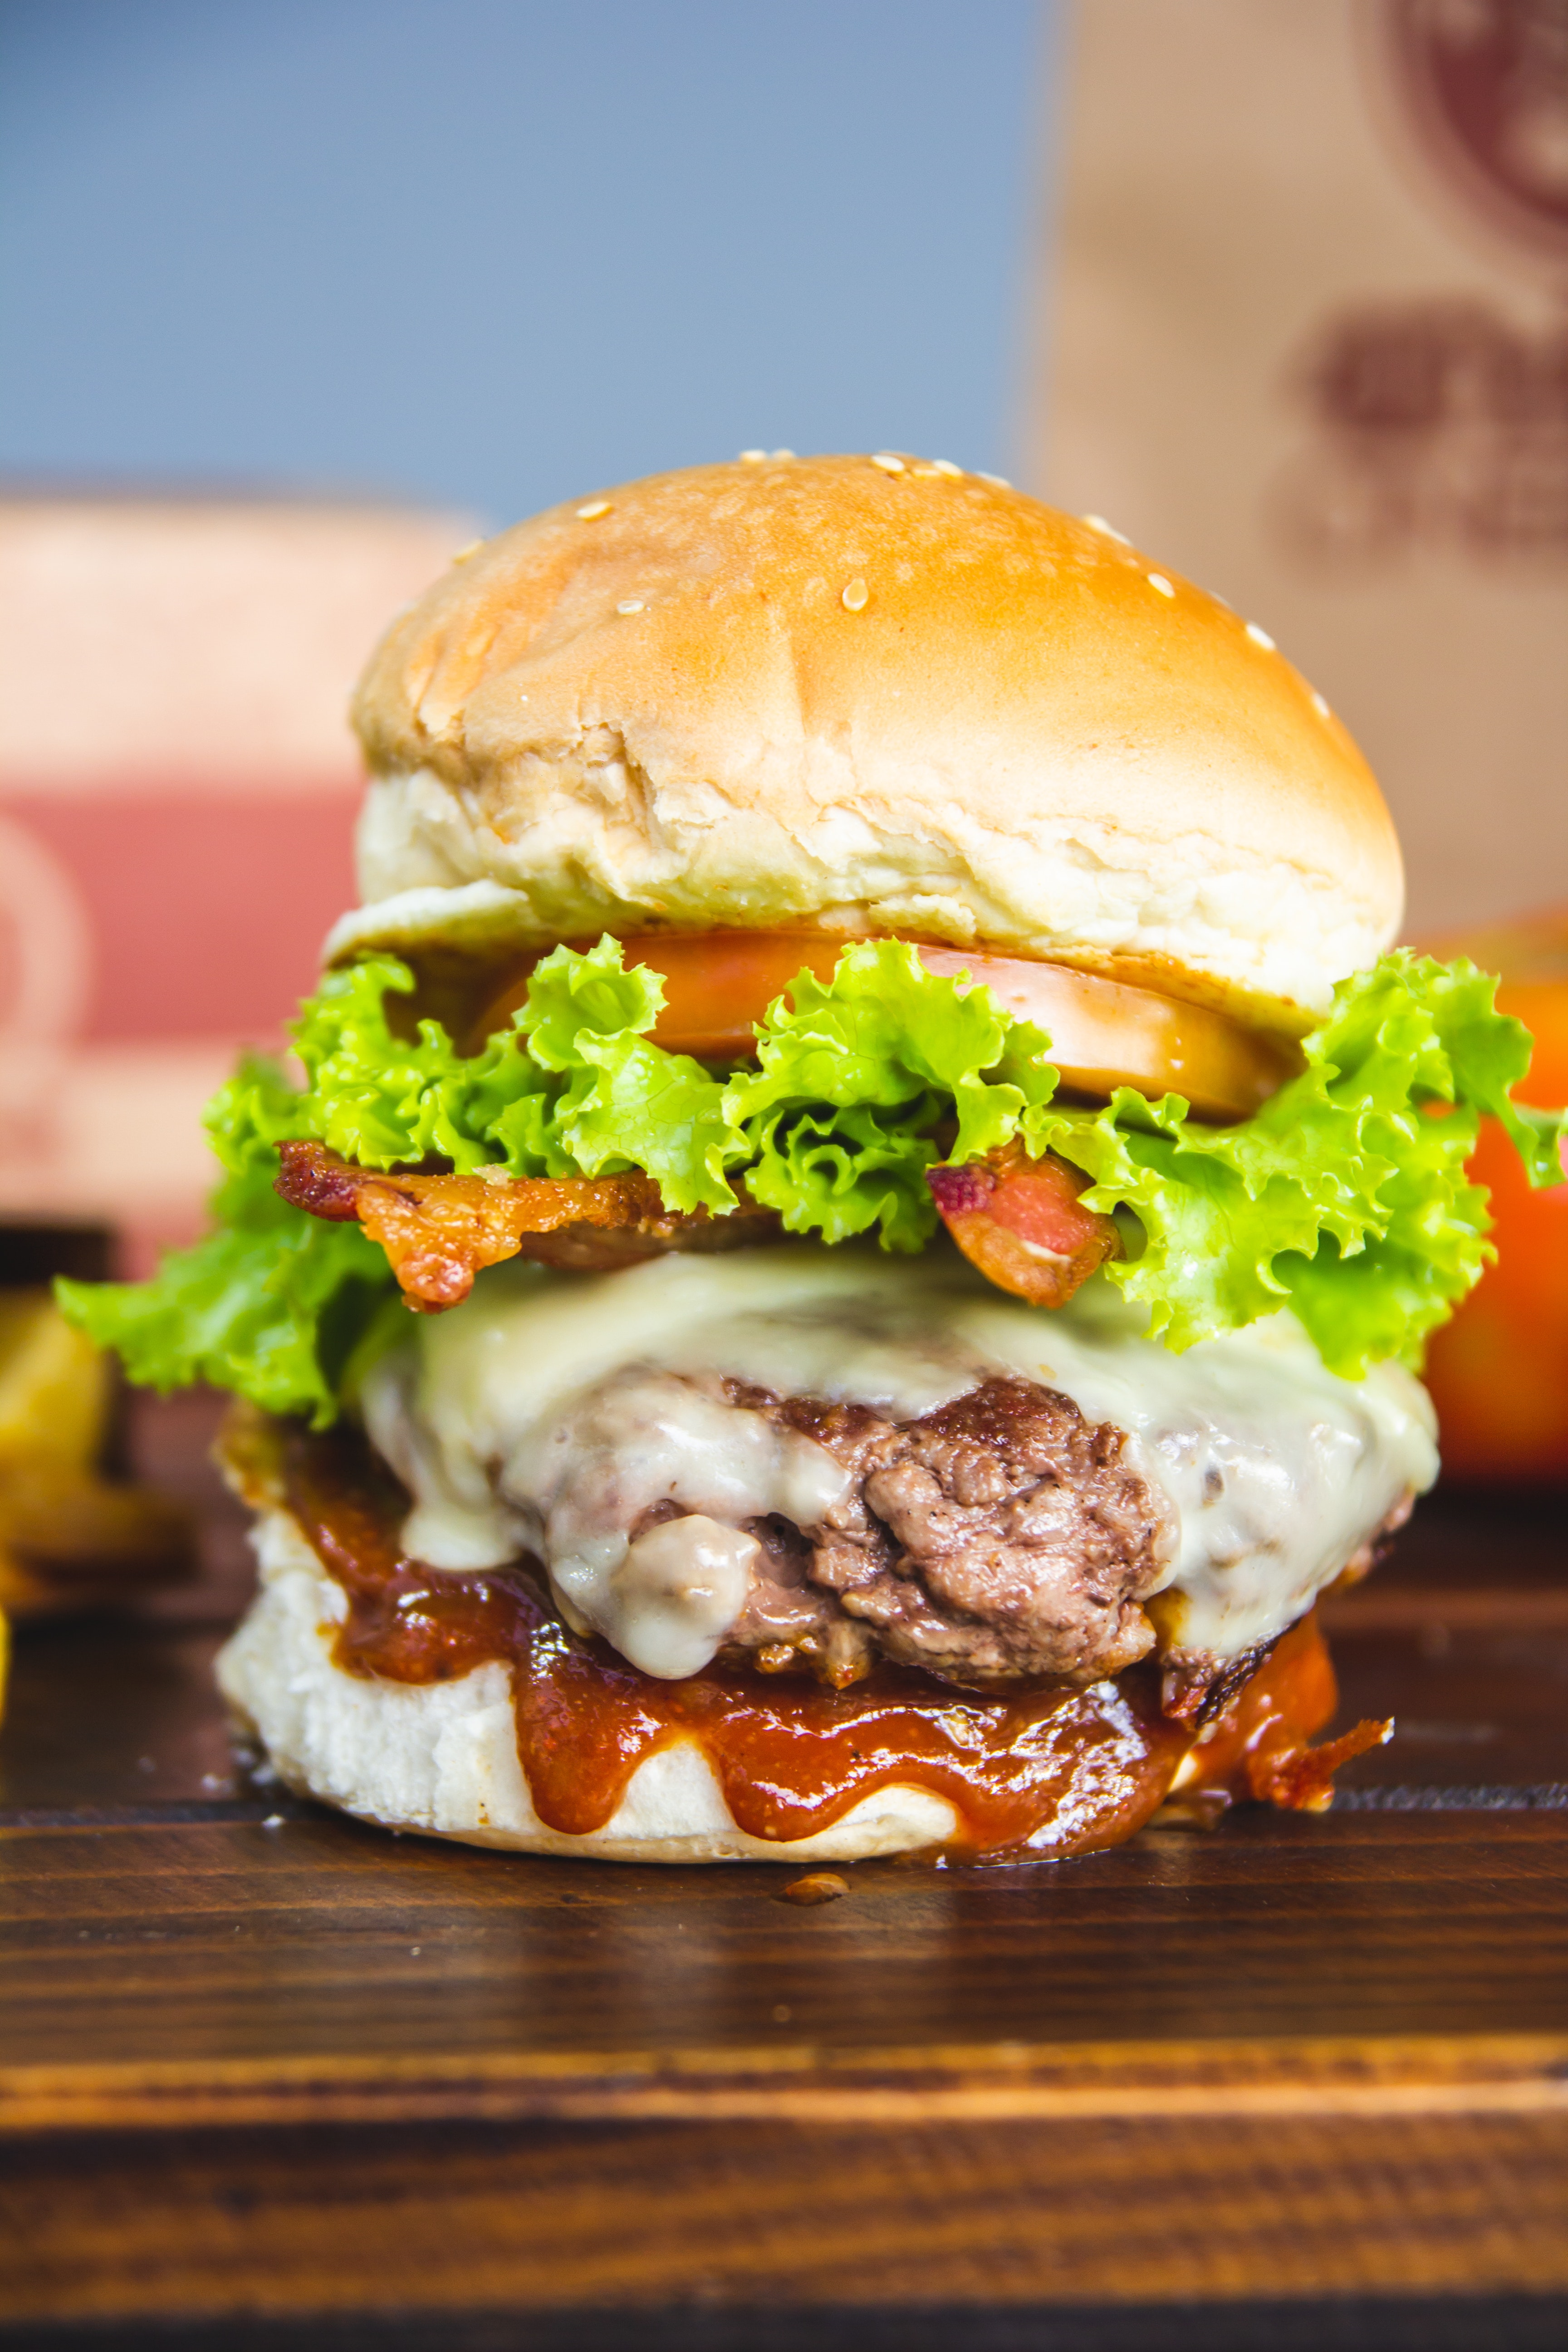 Burger With Patty and Lettuce · Free Stock Photo